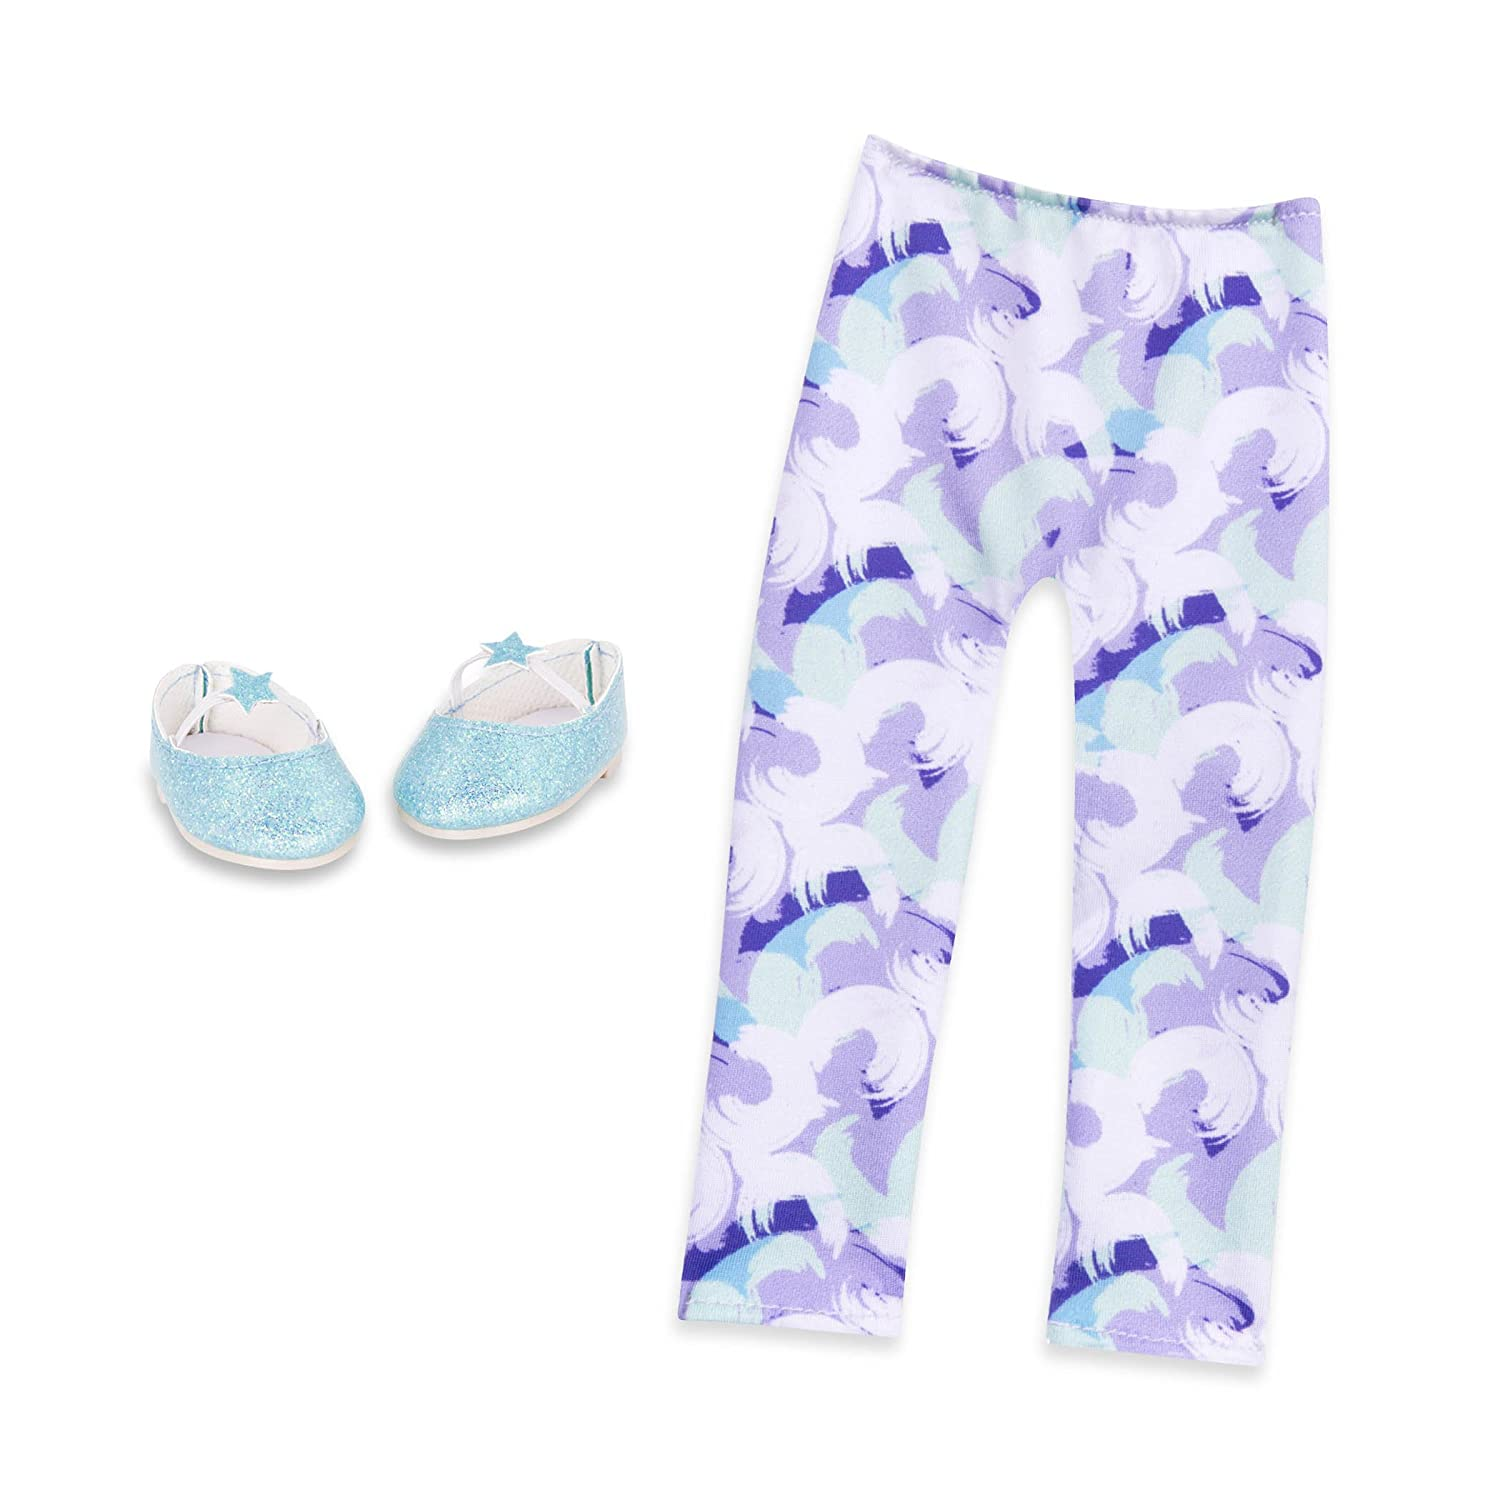 14-inch Doll Clothes and Accessories for Girls Age 3 and Up Glitter Girls by Battat Children/'s Toys Glitter on the Go Shoes Accessory Set